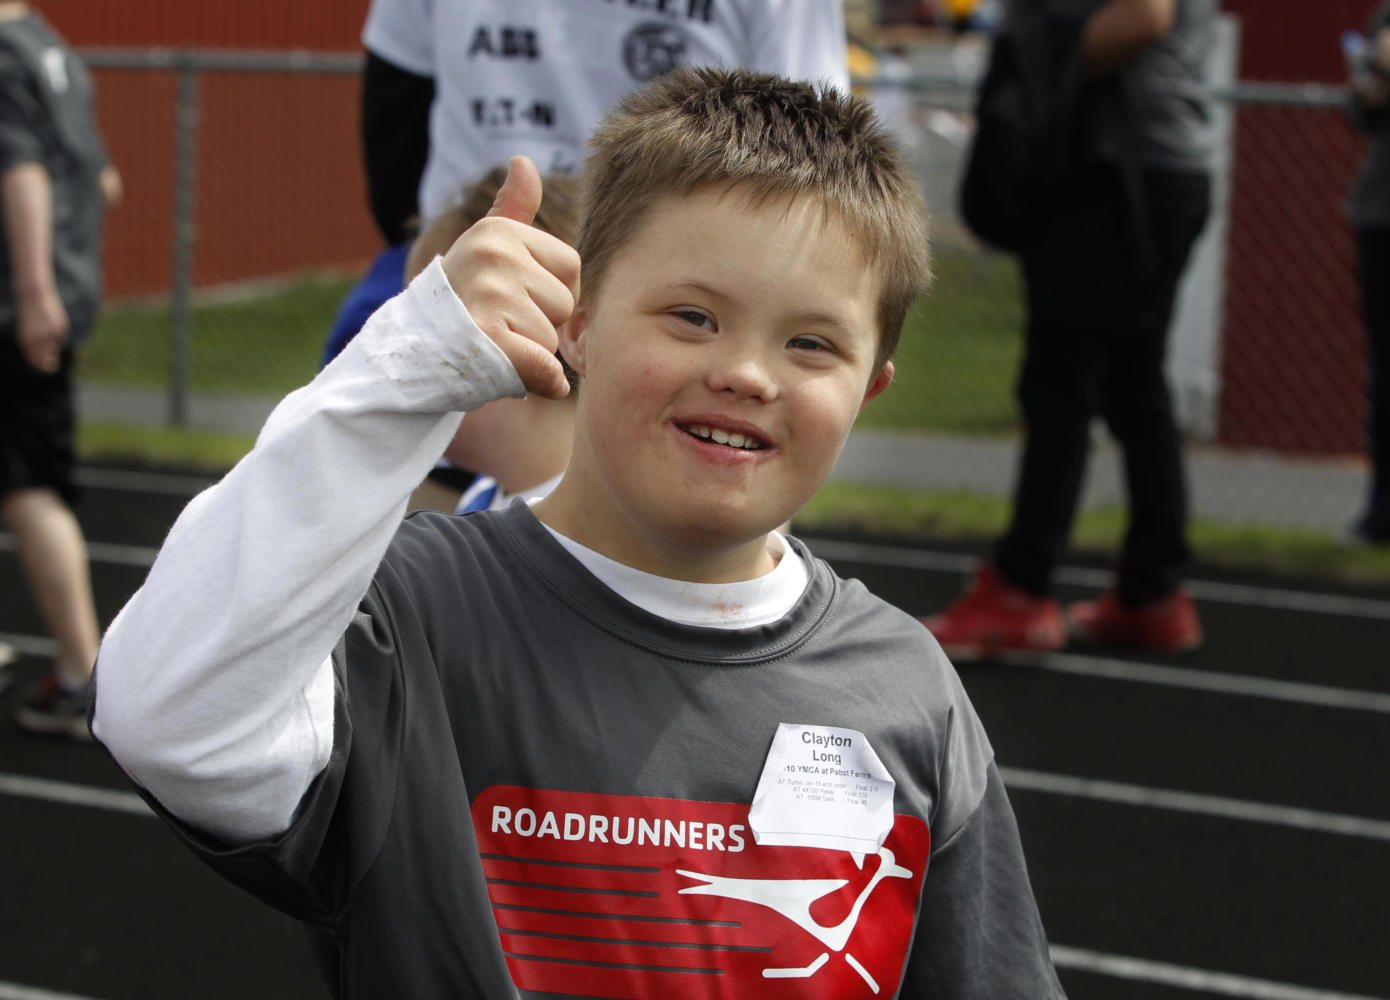 Clayton Long, representing the YMCA at Pabst Farms, is all smiles after he competes and crosses the line in the 100 meter dash. Over 1800 special olympic athletes from the the  greater-Milwaukee area competed in track and field events with  first-, second- and third-place finishers able to qualify for a place in the Special Olympics Wisconsin State Summer Games. The event took place at Muskego High School, Saturday, May 4, 2013.  Journal Sentinel photo by RICK WOOD/ RWOOD@JOURNALSENTINEL.COM